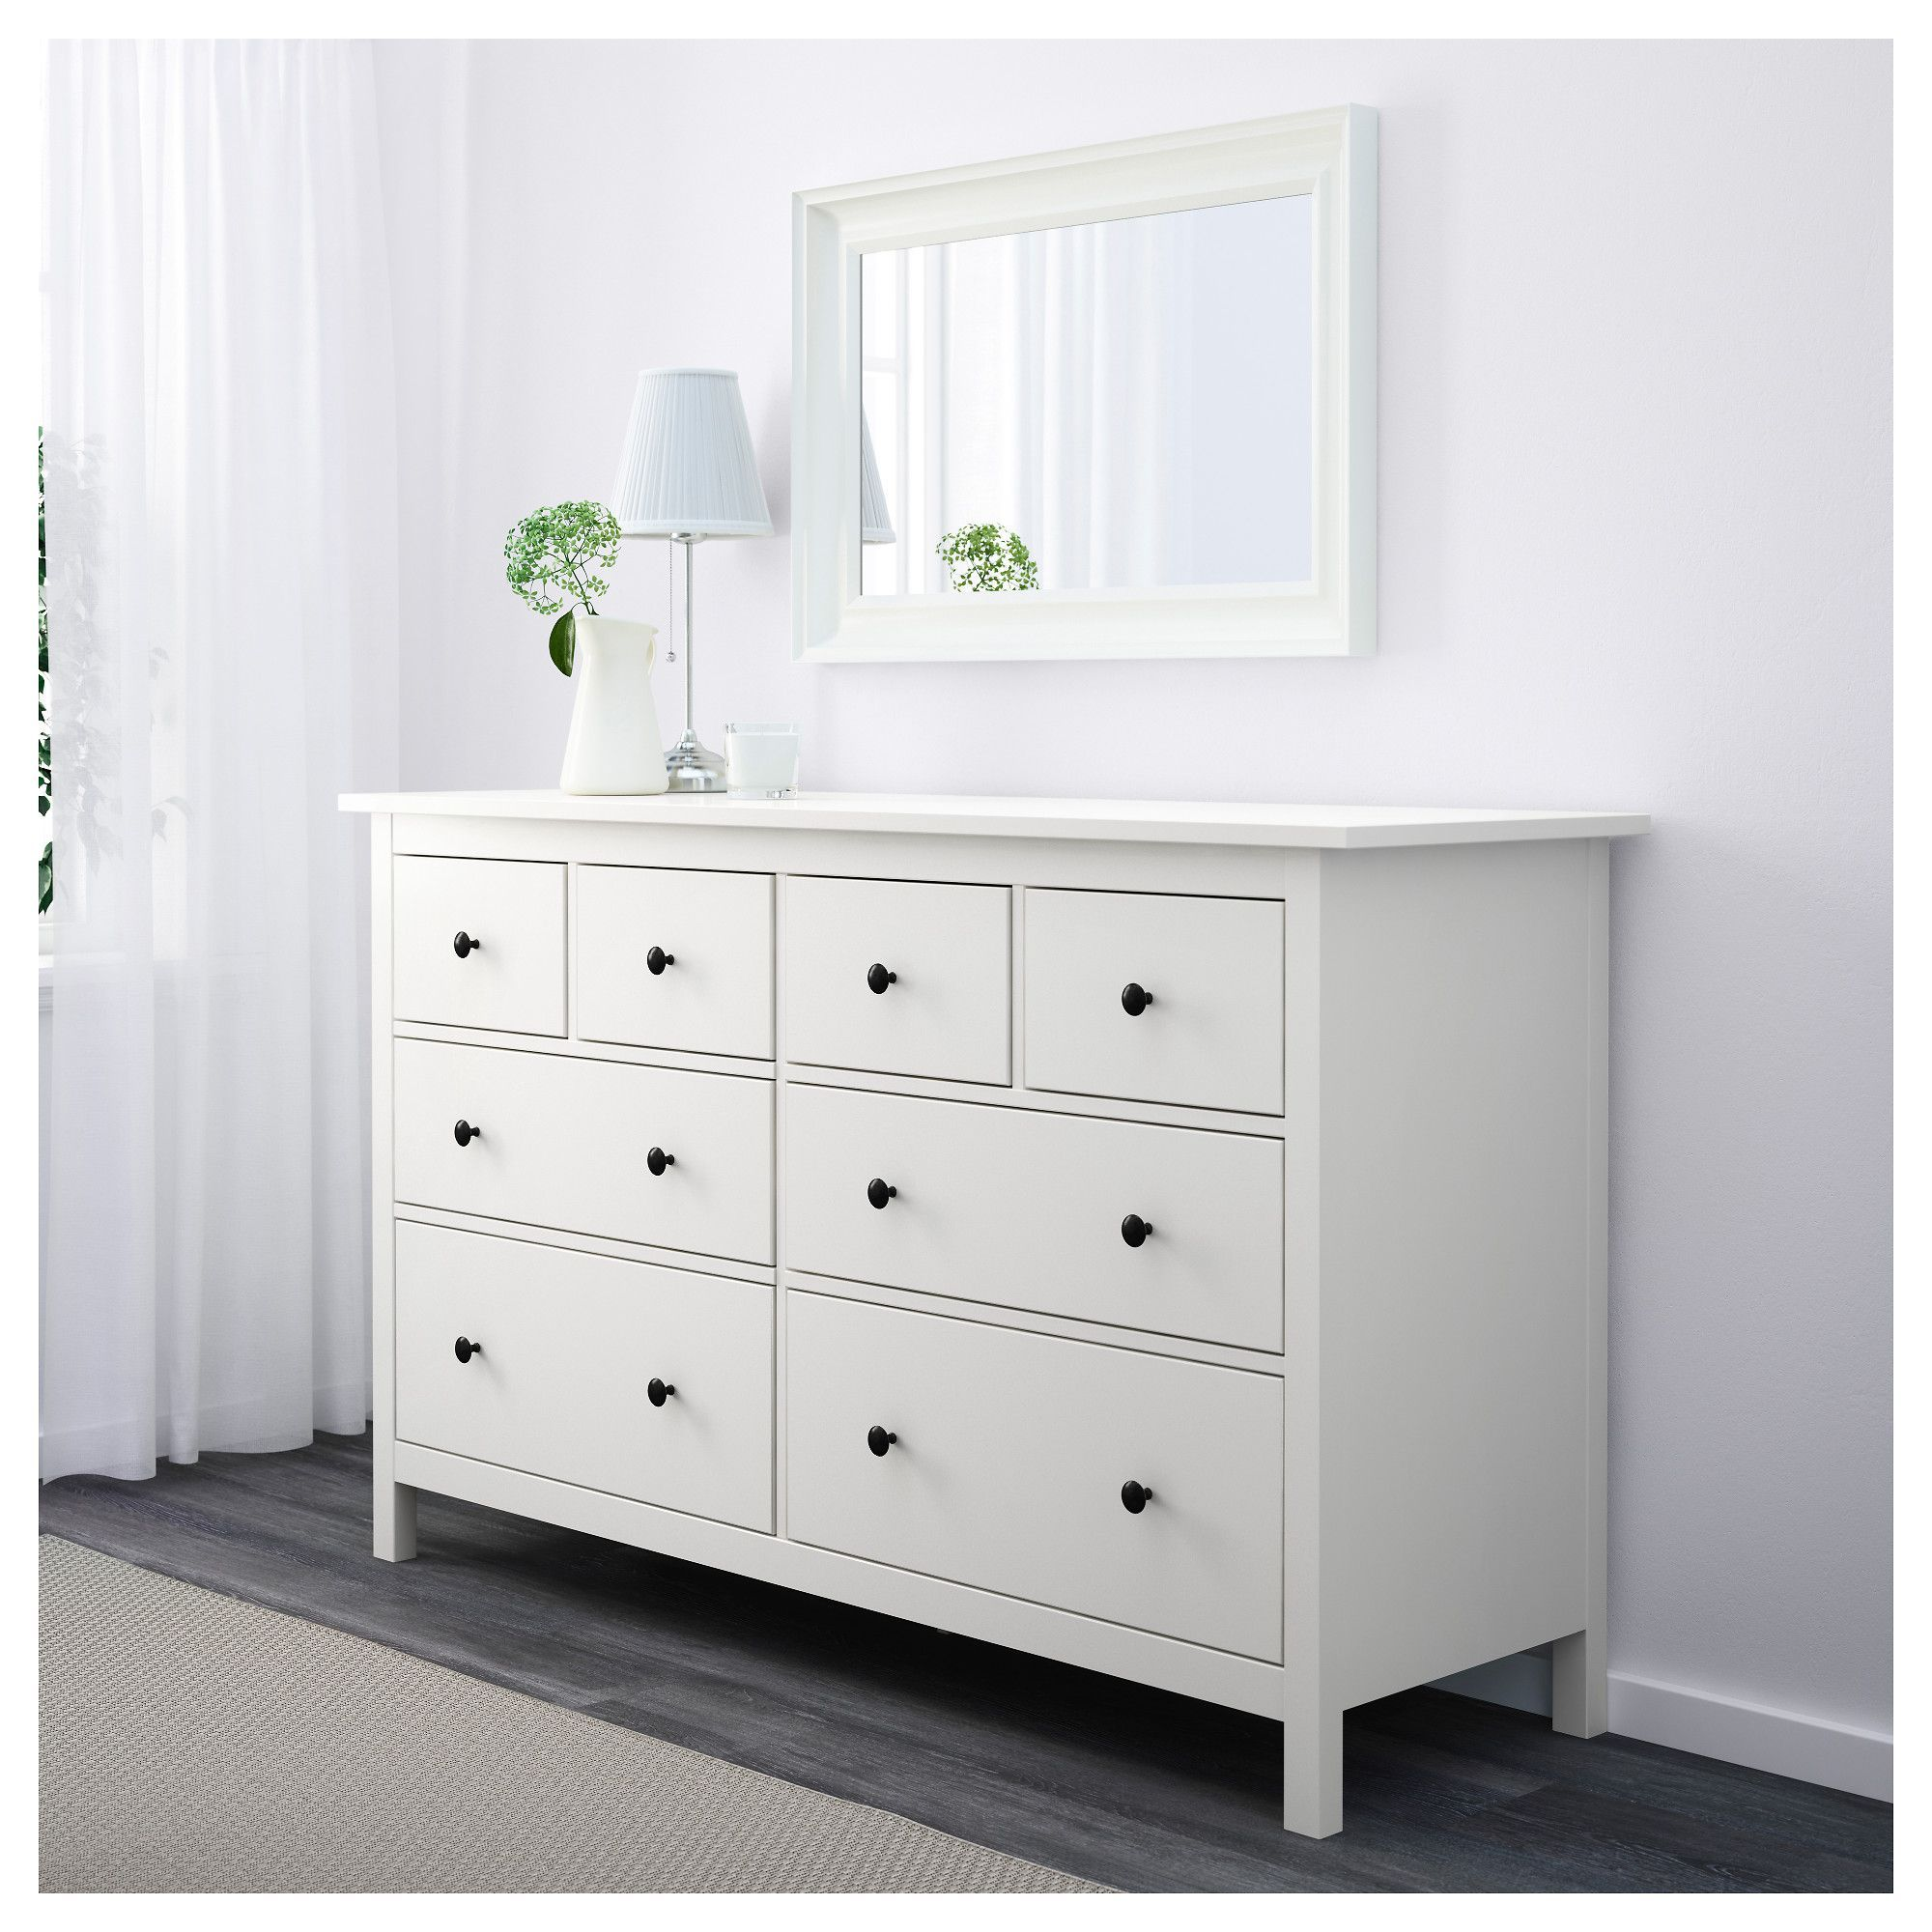 Ikea Hemnes 8 Drawer Dresser White Mobilier Blanc Commode Tiroirs Meuble Chambre A Coucher